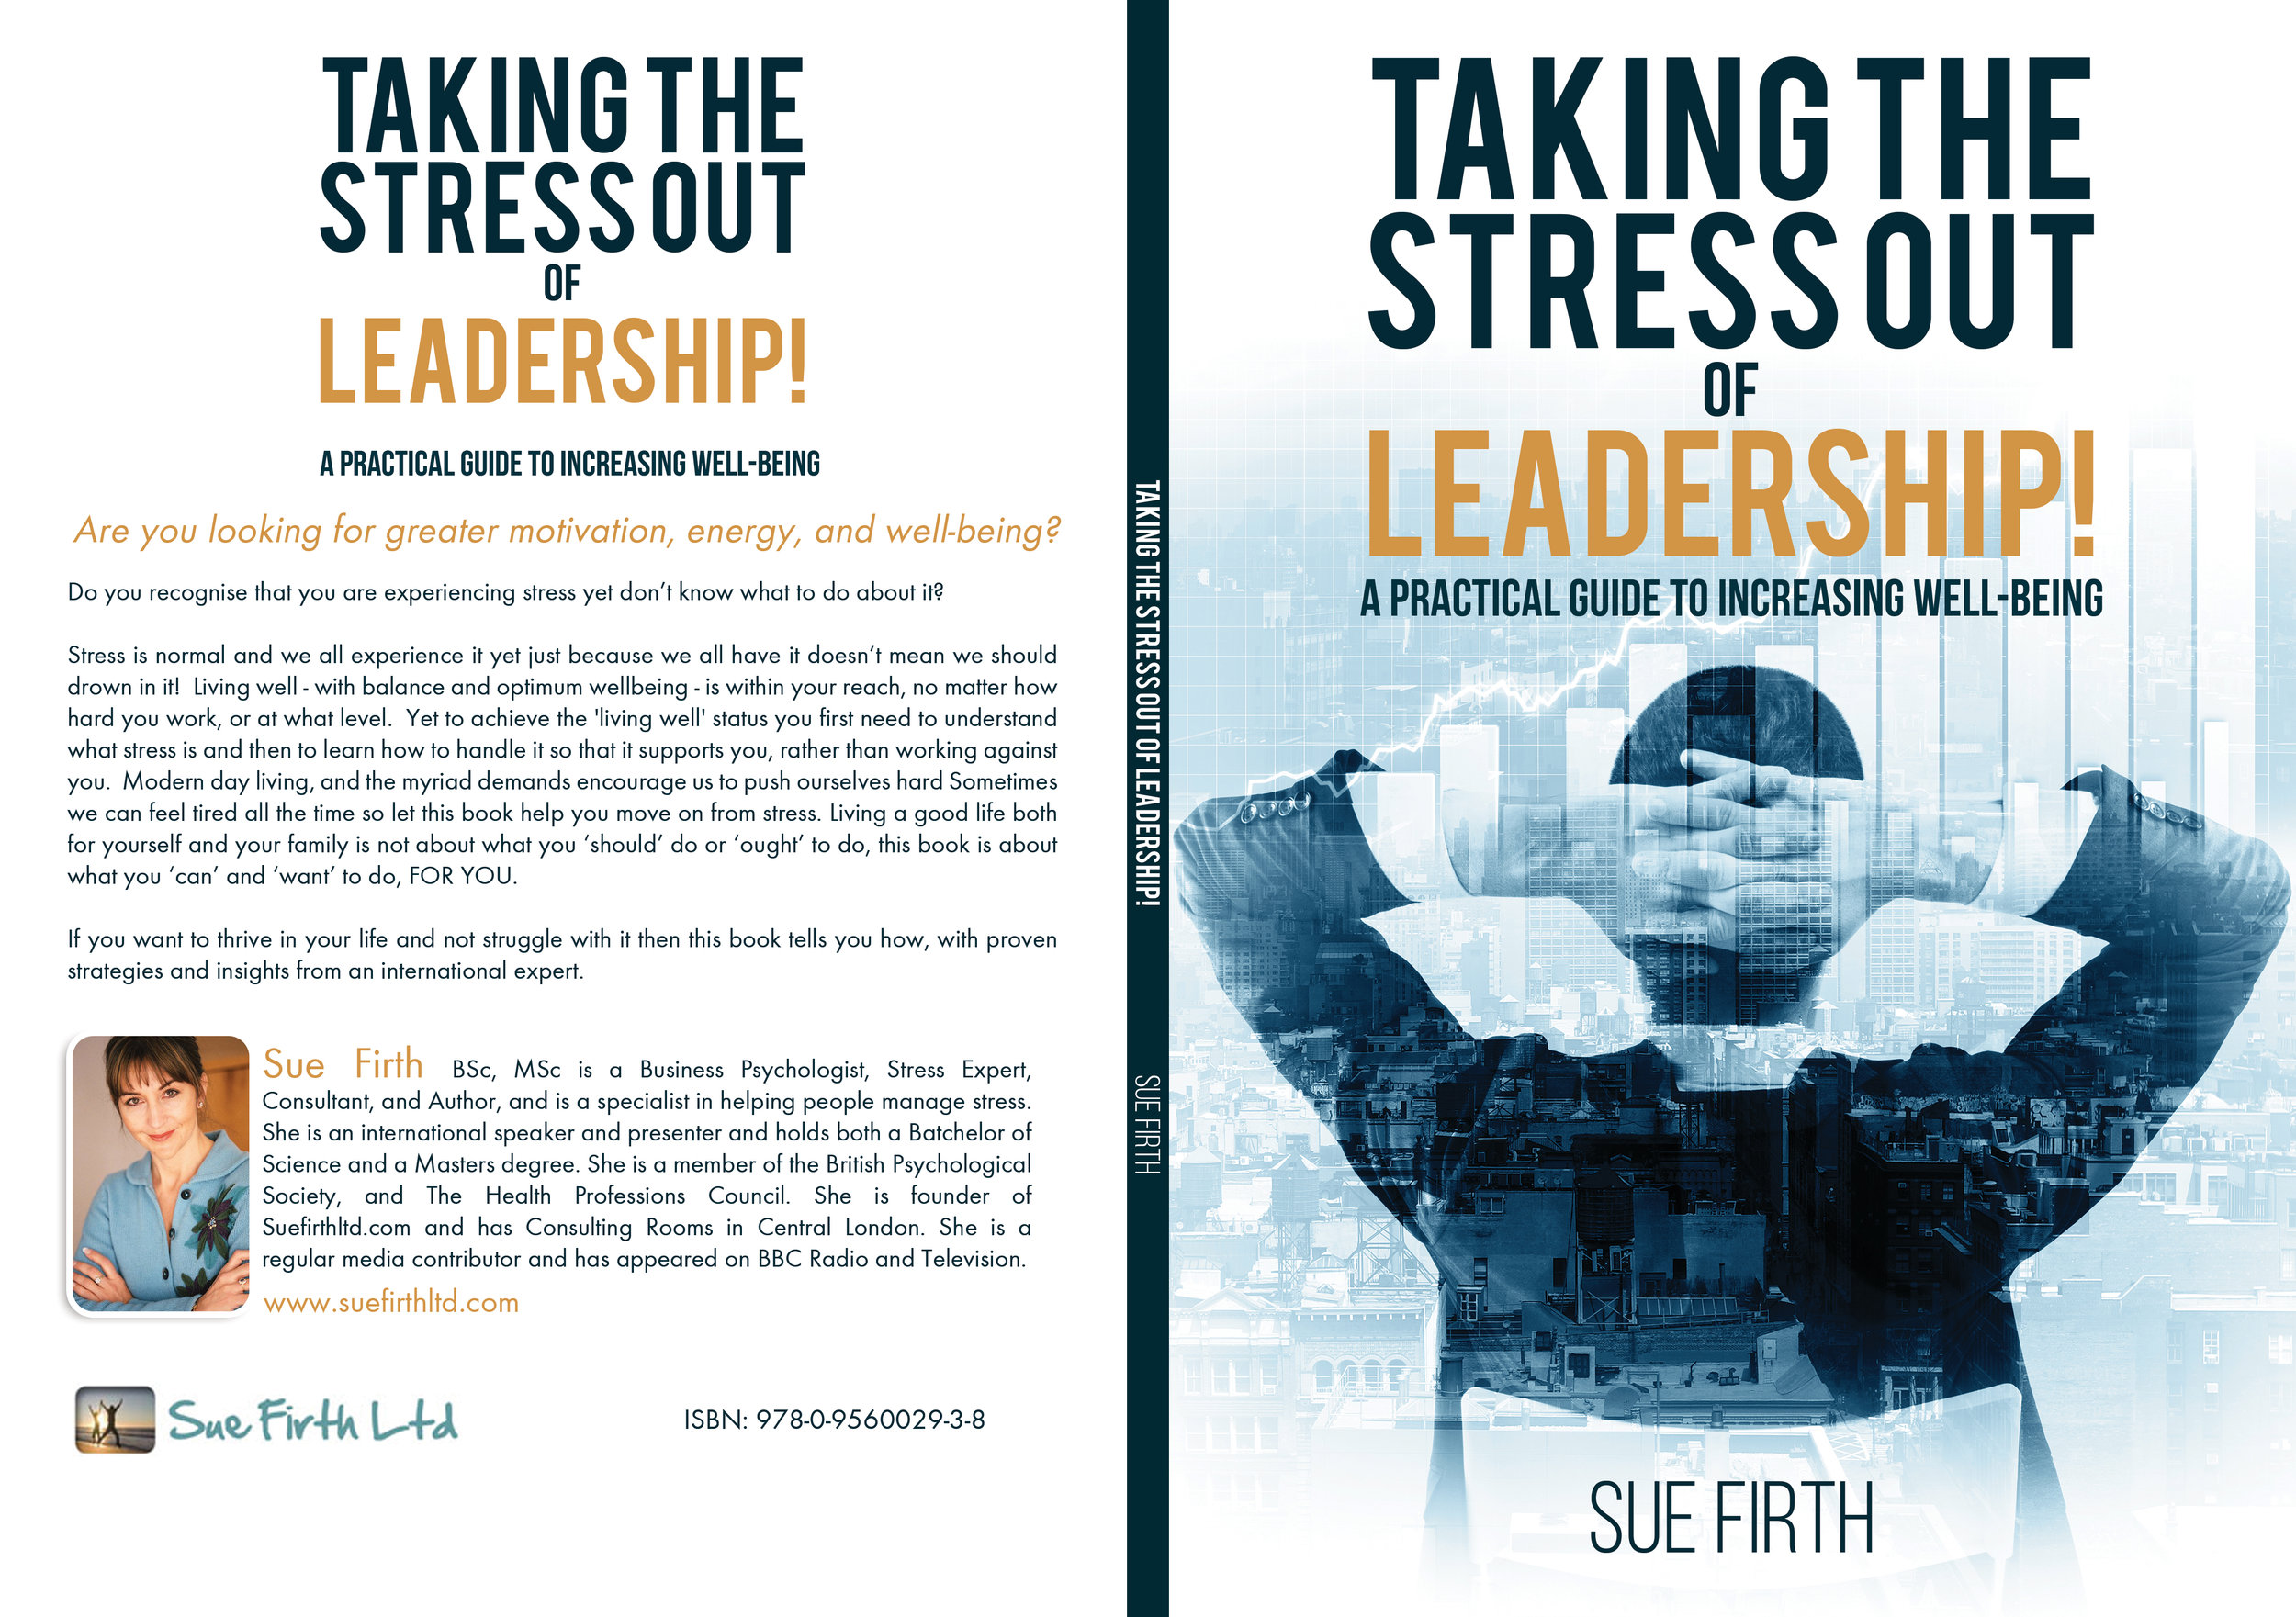 Taking-the-Stress-out-of-Leadership!9.jpg